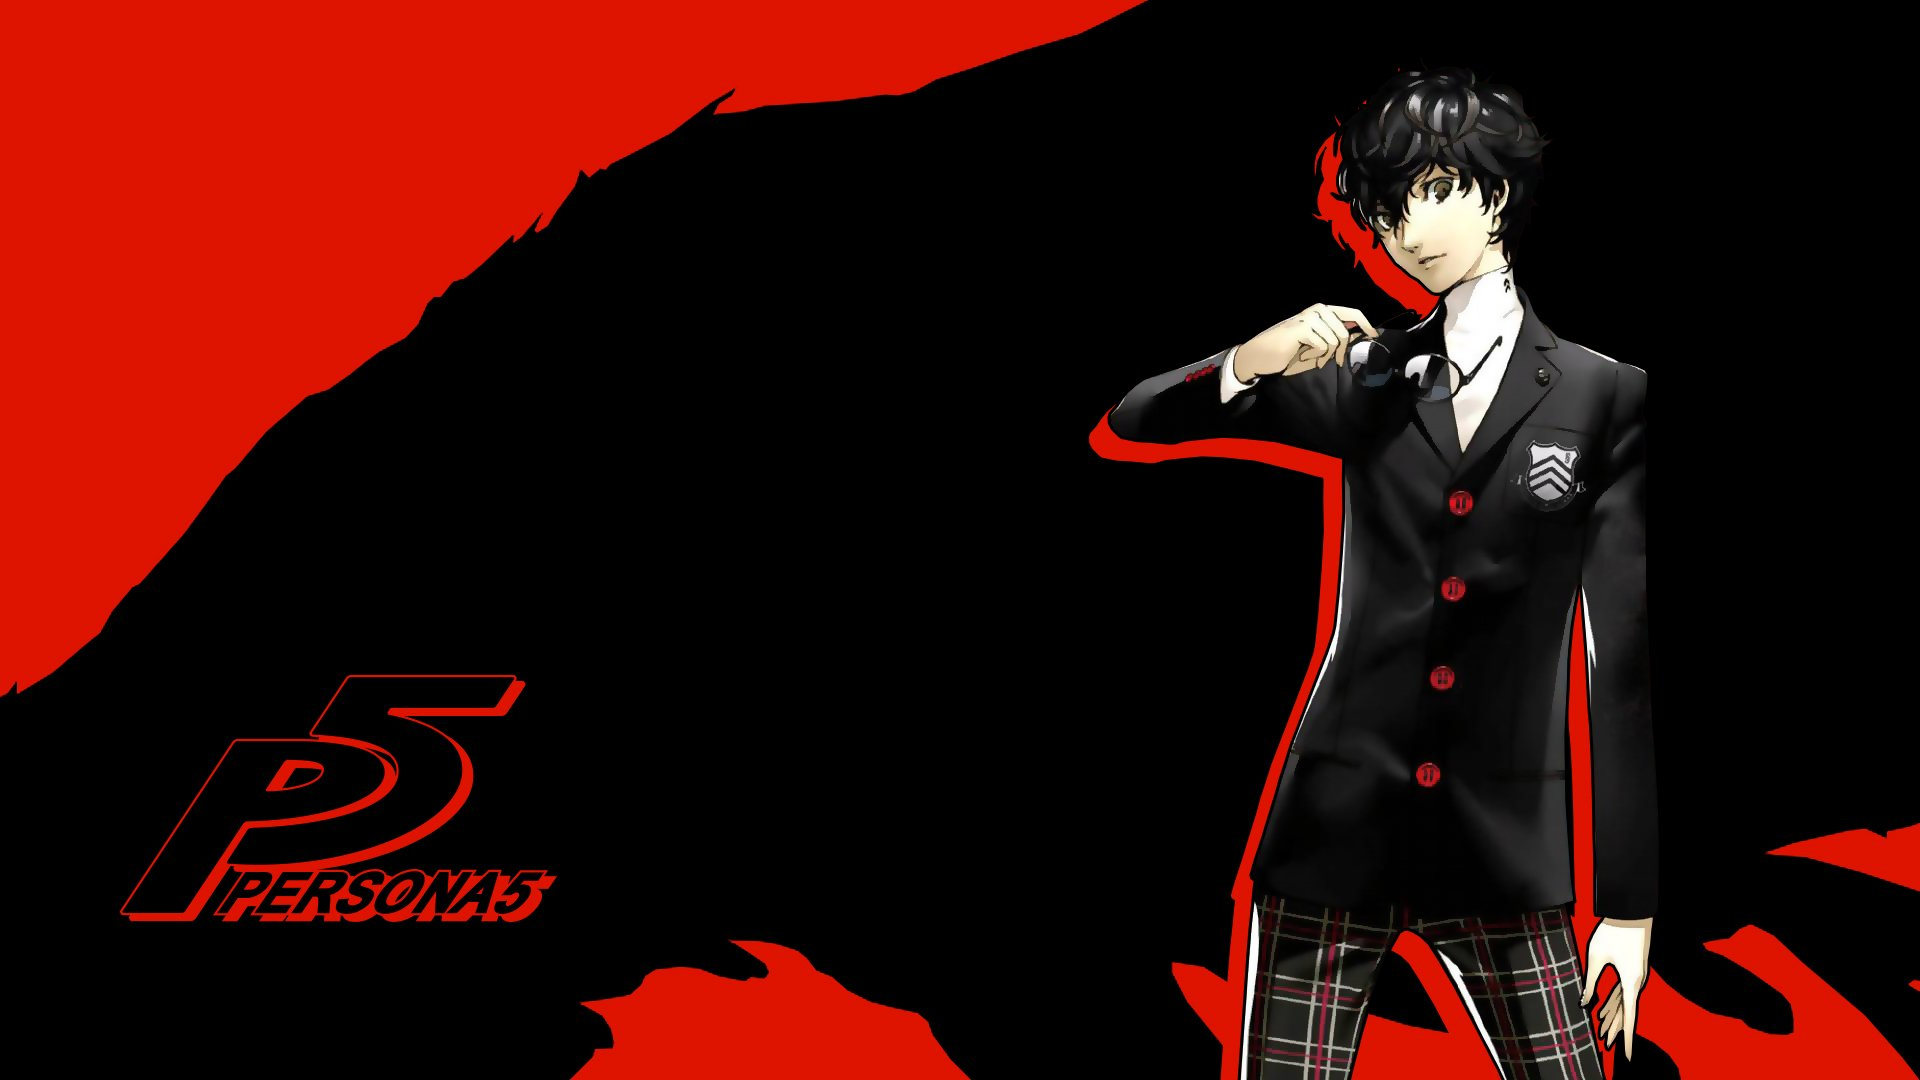 191 Persona 5 HD Wallpapers | Background Images - Wallpaper